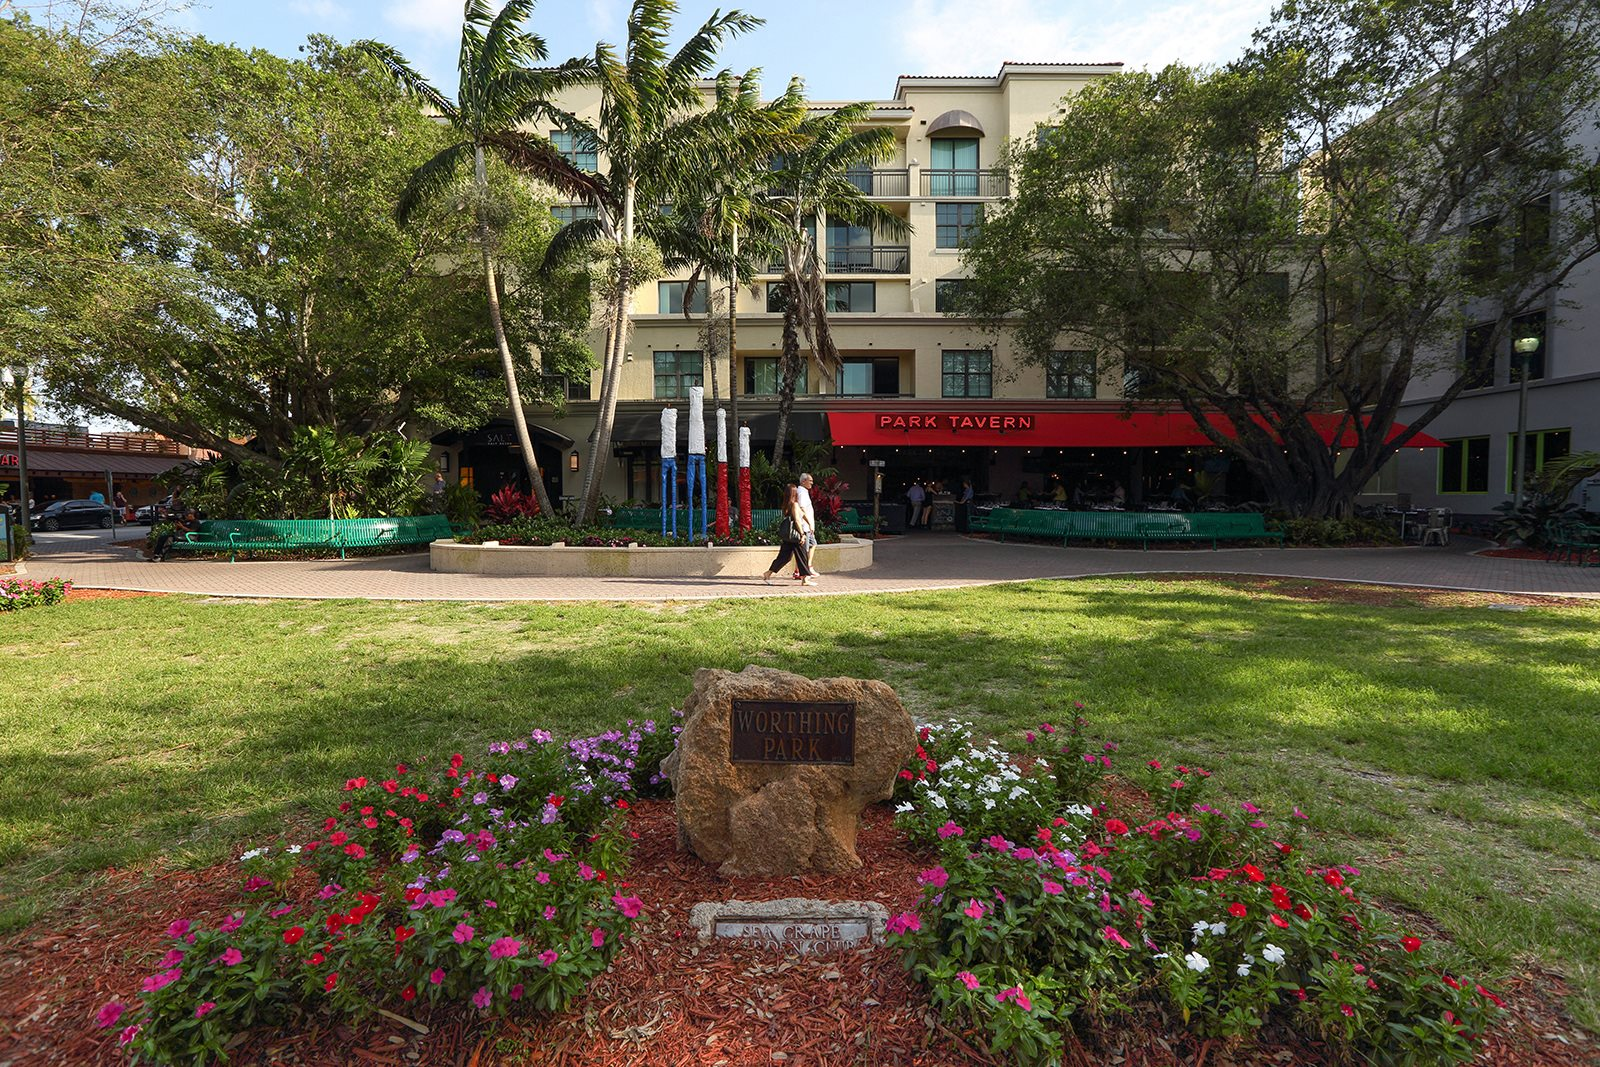 Dine out in Downtown Delray Beach - only a few minutes drive away at Windsor at Delray Beach, Delray Beach,Florida